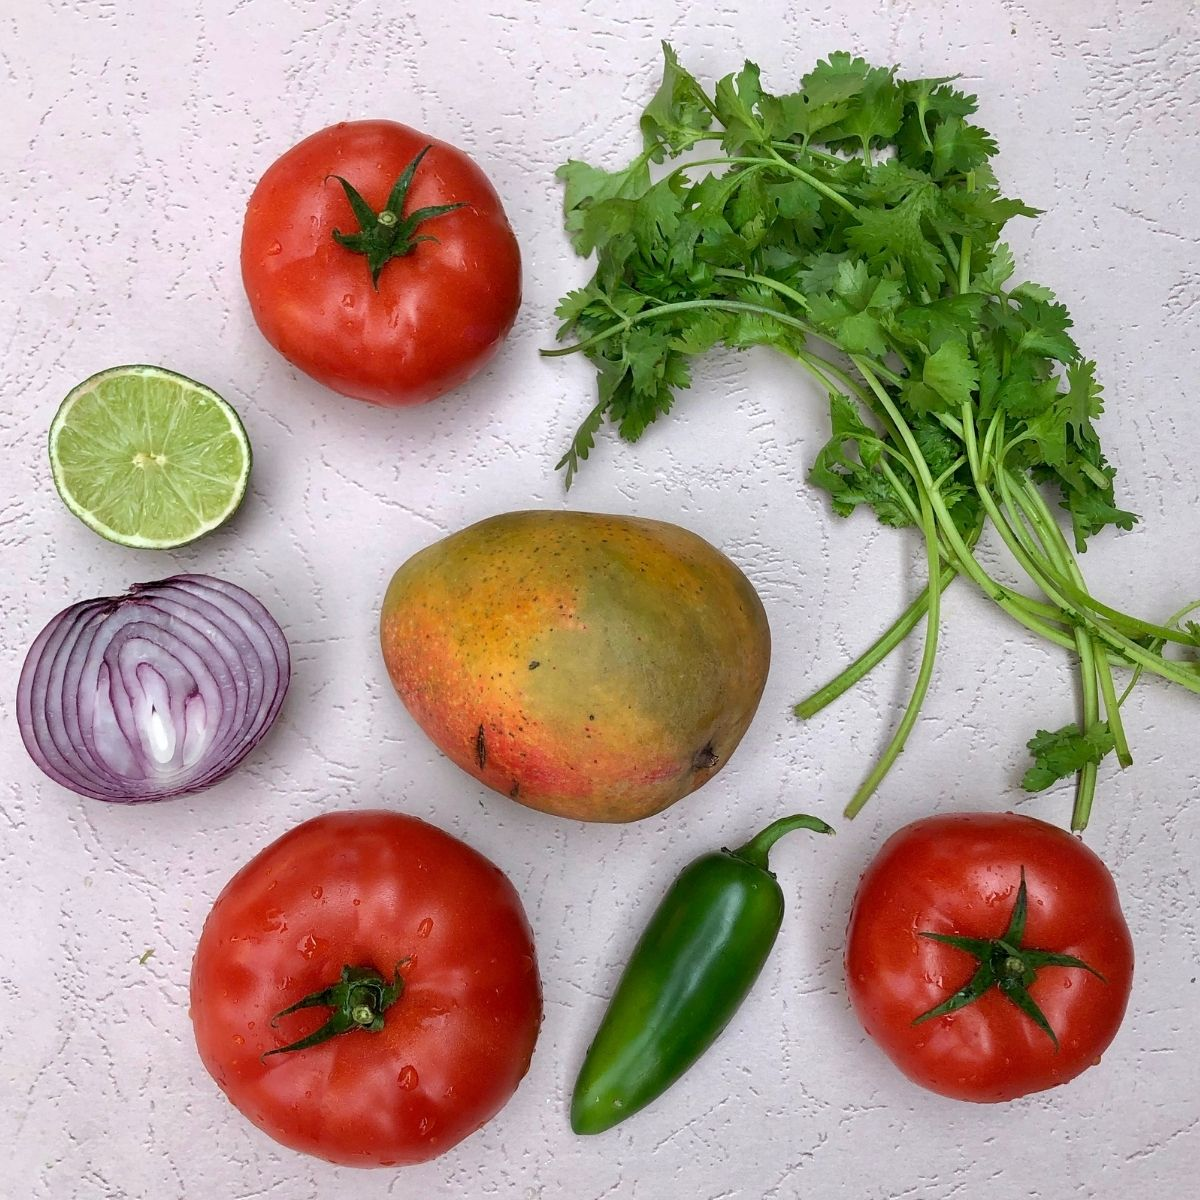 3 fresh tomatoes, 1 fresh mango, 1 jalapeno, 1/2 red onion, lime, bunch of cilantro spread out on a light pink backdrop